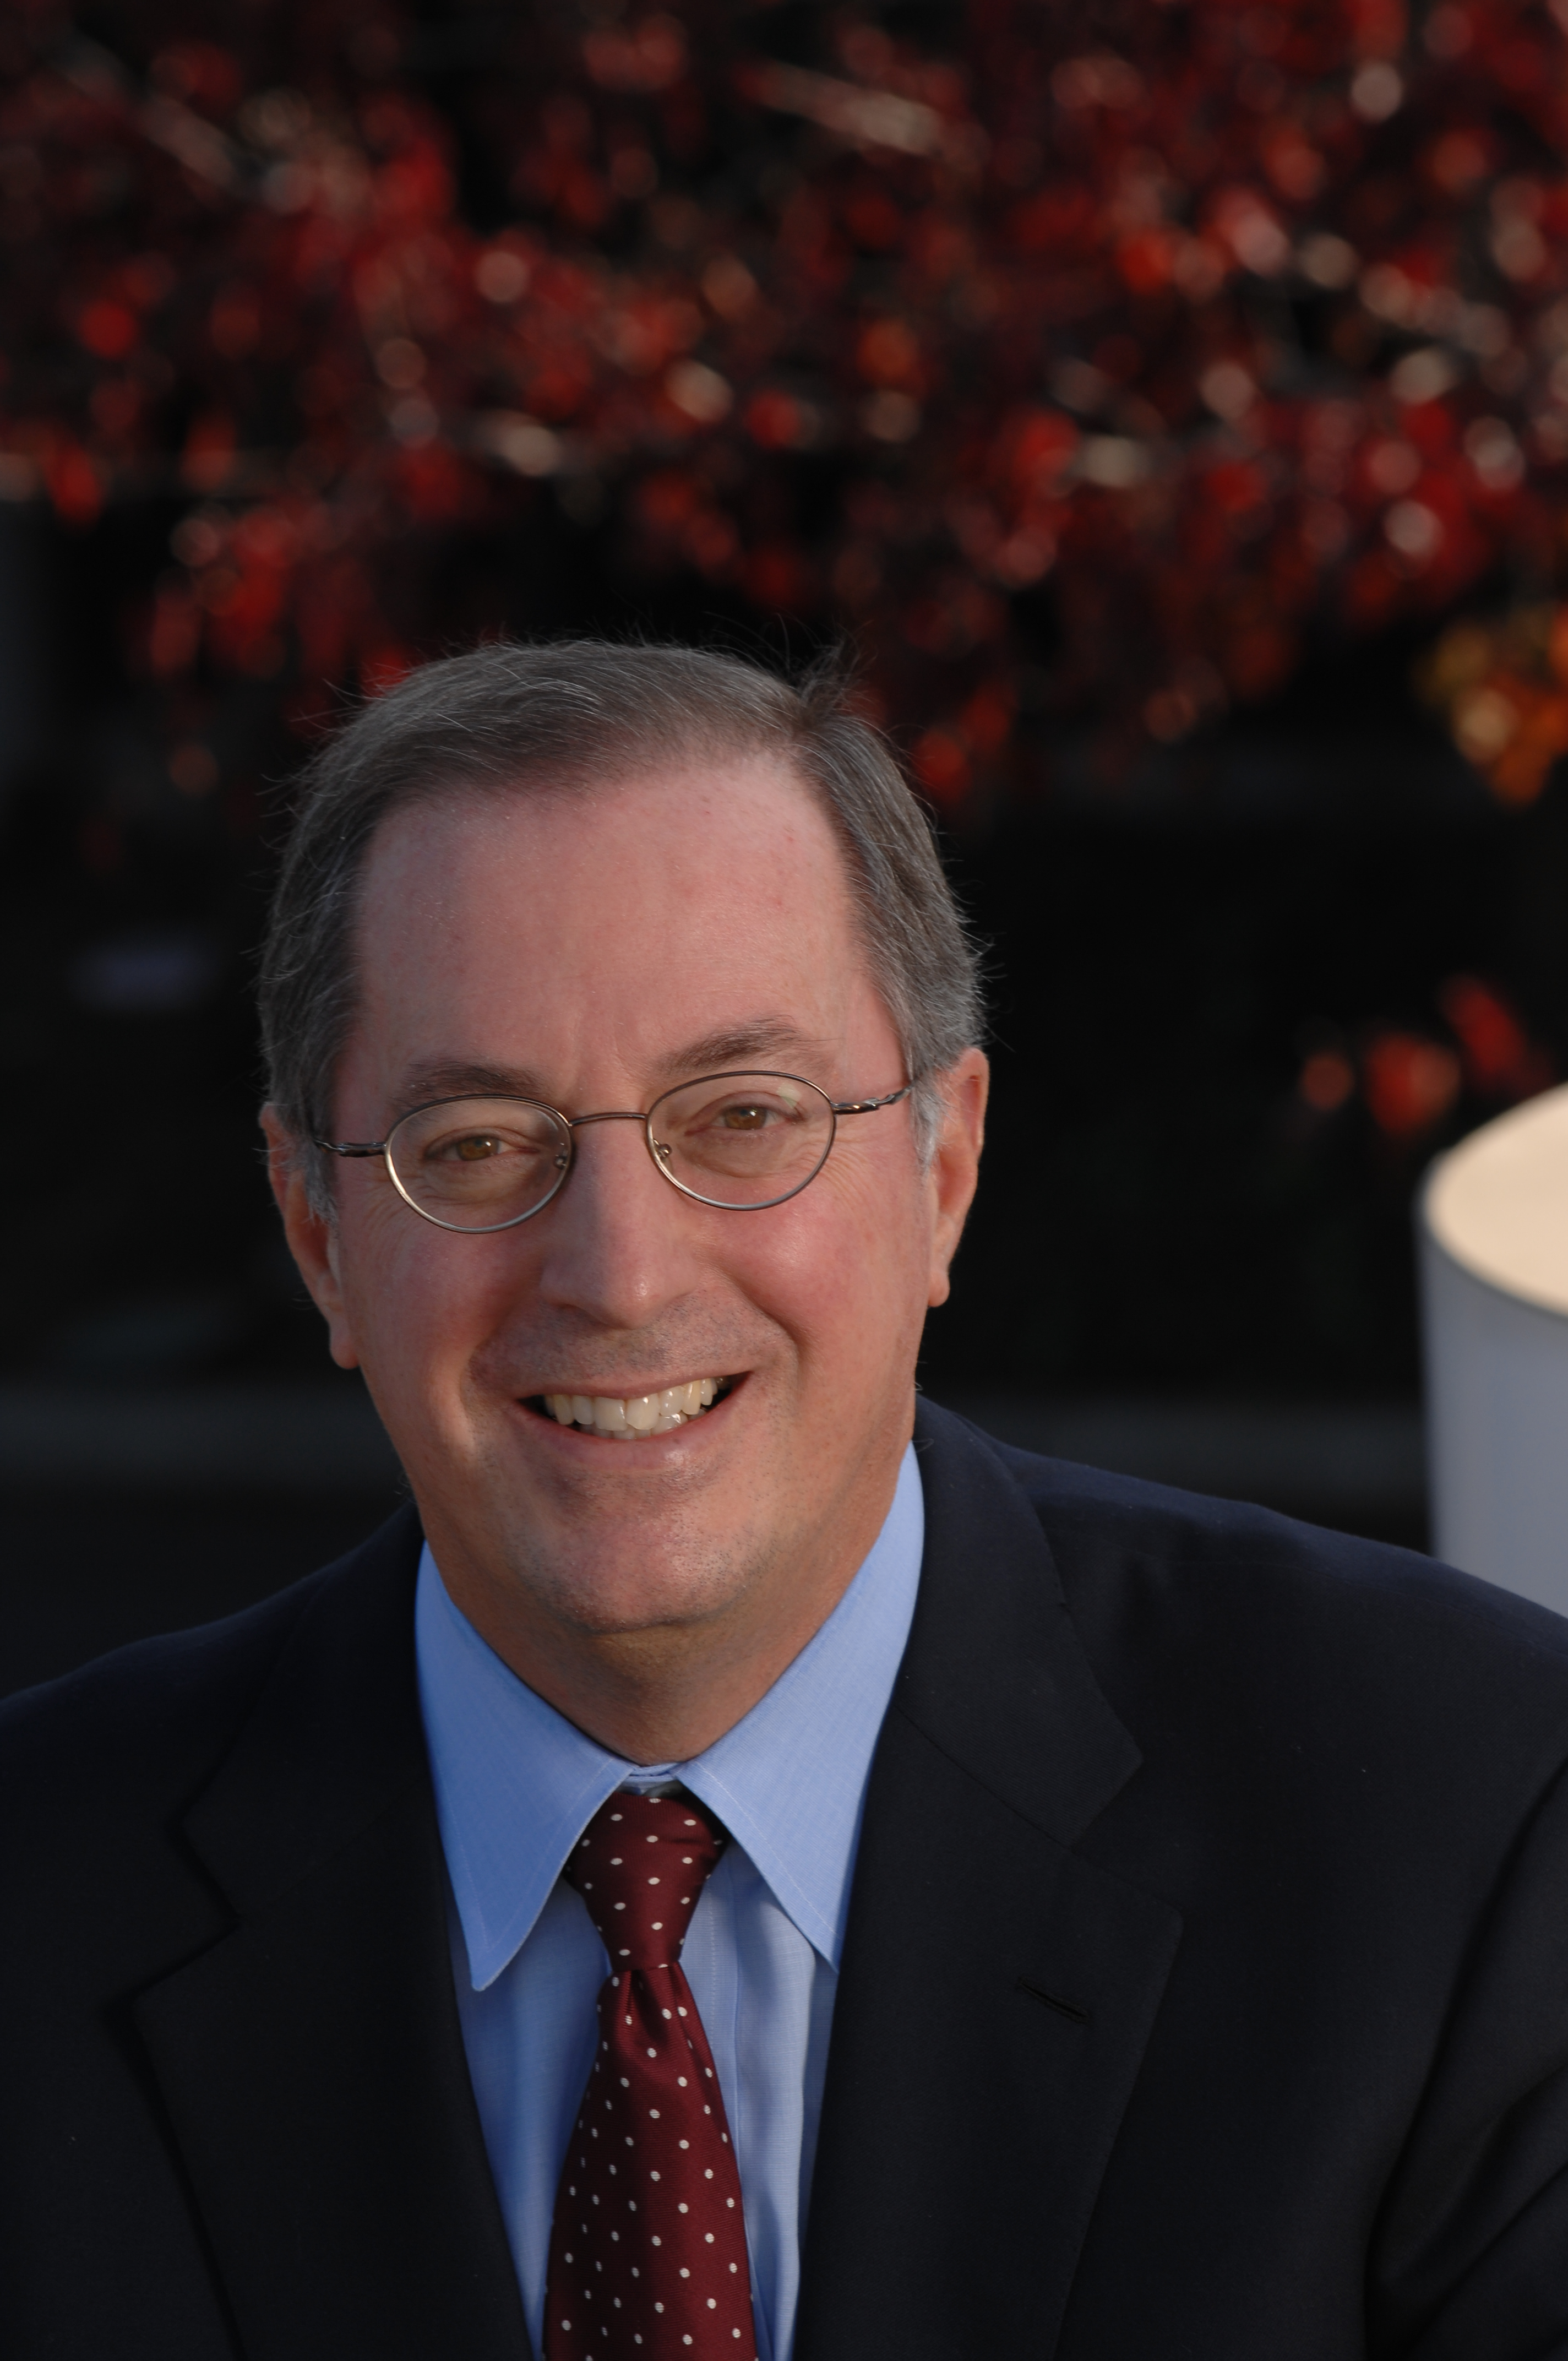 paul stevens otellini essay Ceo paul otellini launched his employee blog in 2004 and other top execs and   a case study report is not an essay: it is a call for action, to be read by the  company's  andy stevenson, ceo, fujitsu telecommunications europe  limited.